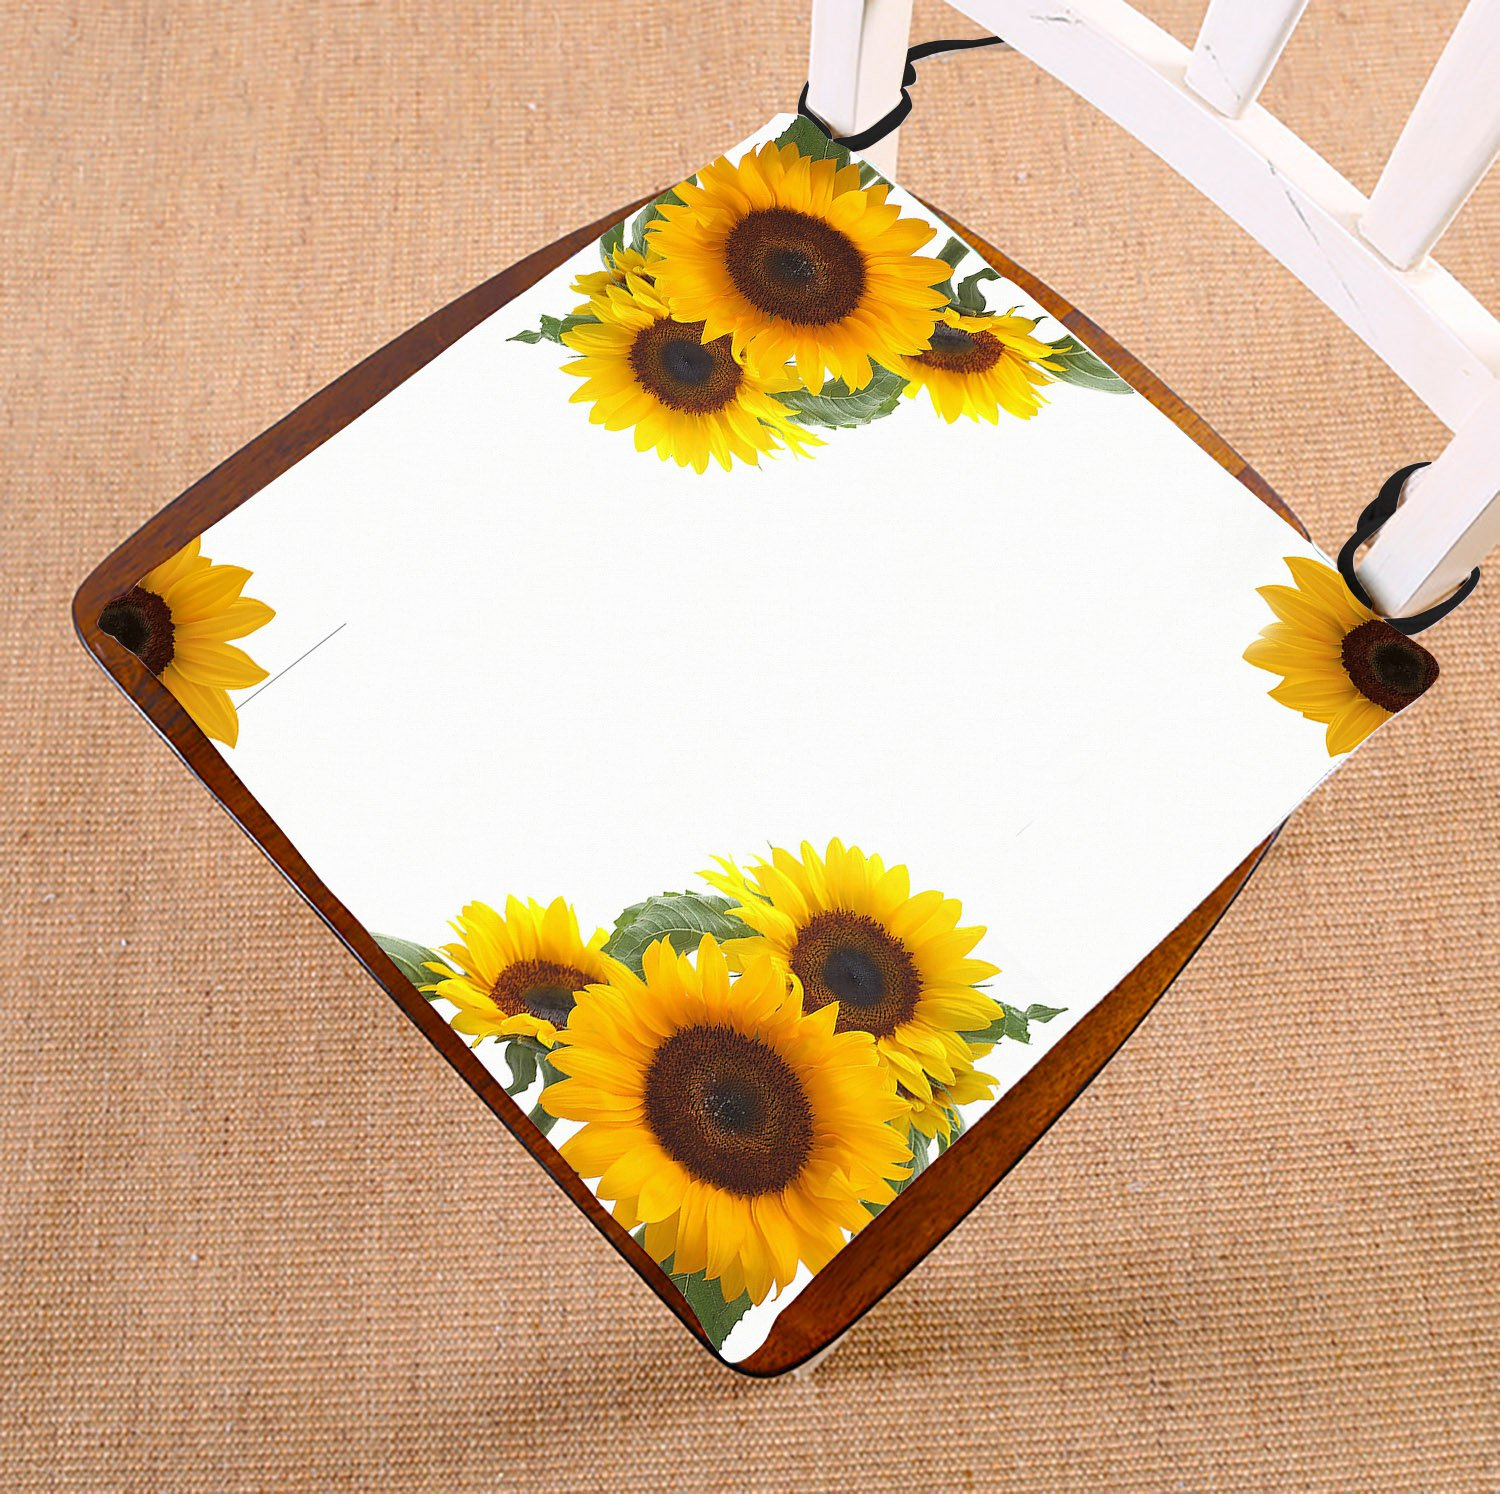 GCKG Sunflowers Chair Pad Seat Cushion Chair Cushion Floor Cushion with Breathable Memory Inner Cushion and Ties Two Sides Printing 16x16 inches